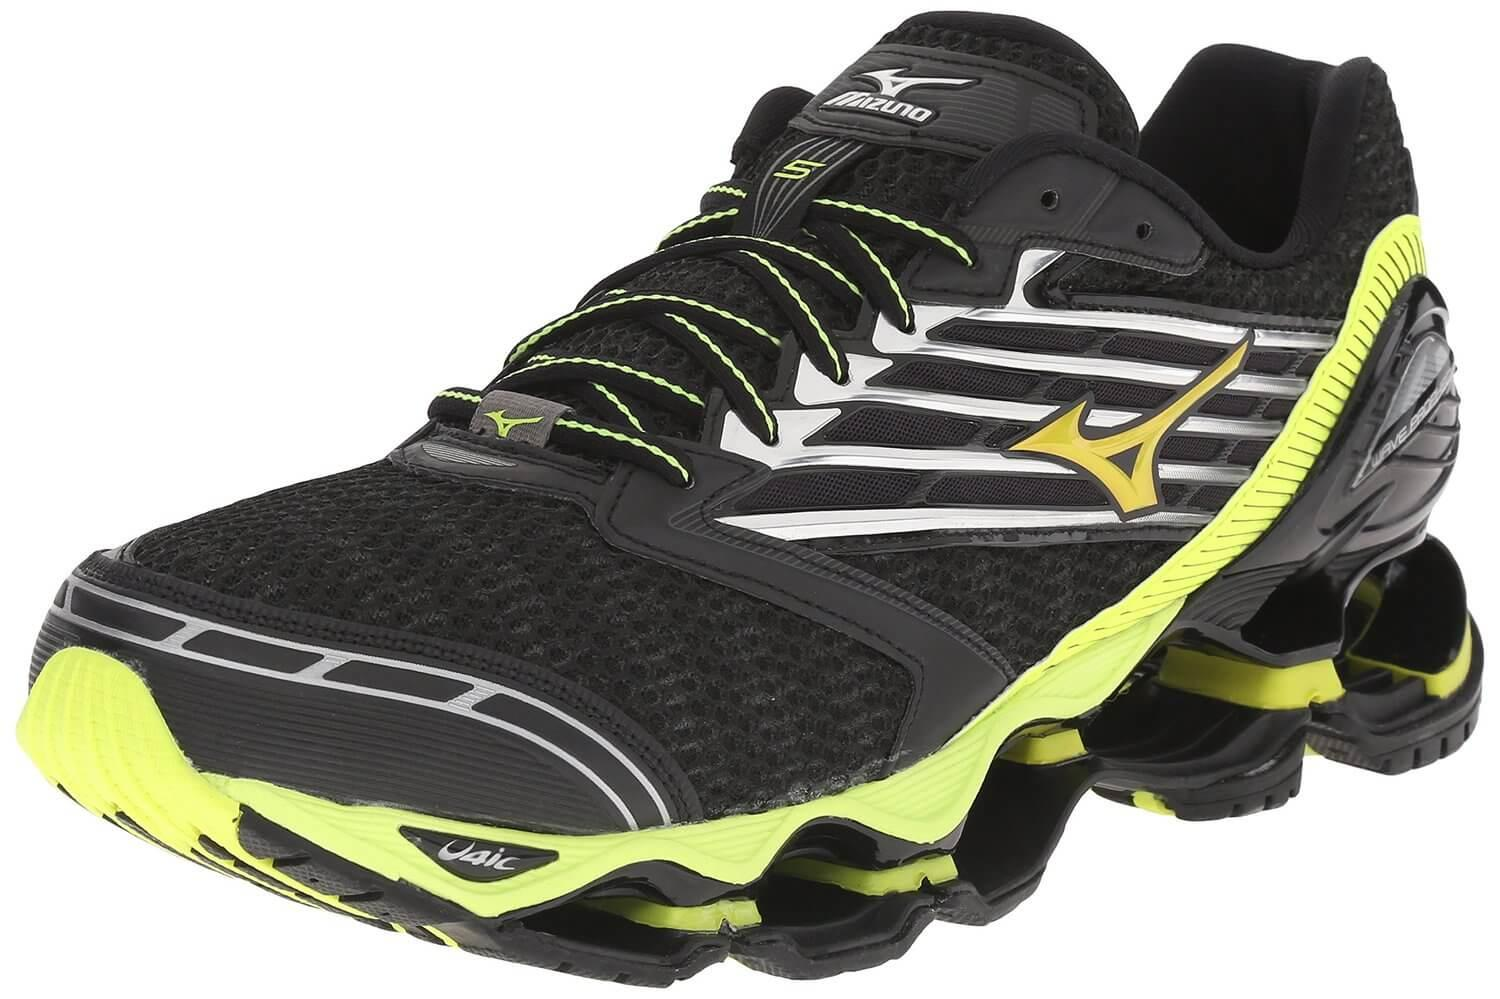 New Mizuno Running Shoes